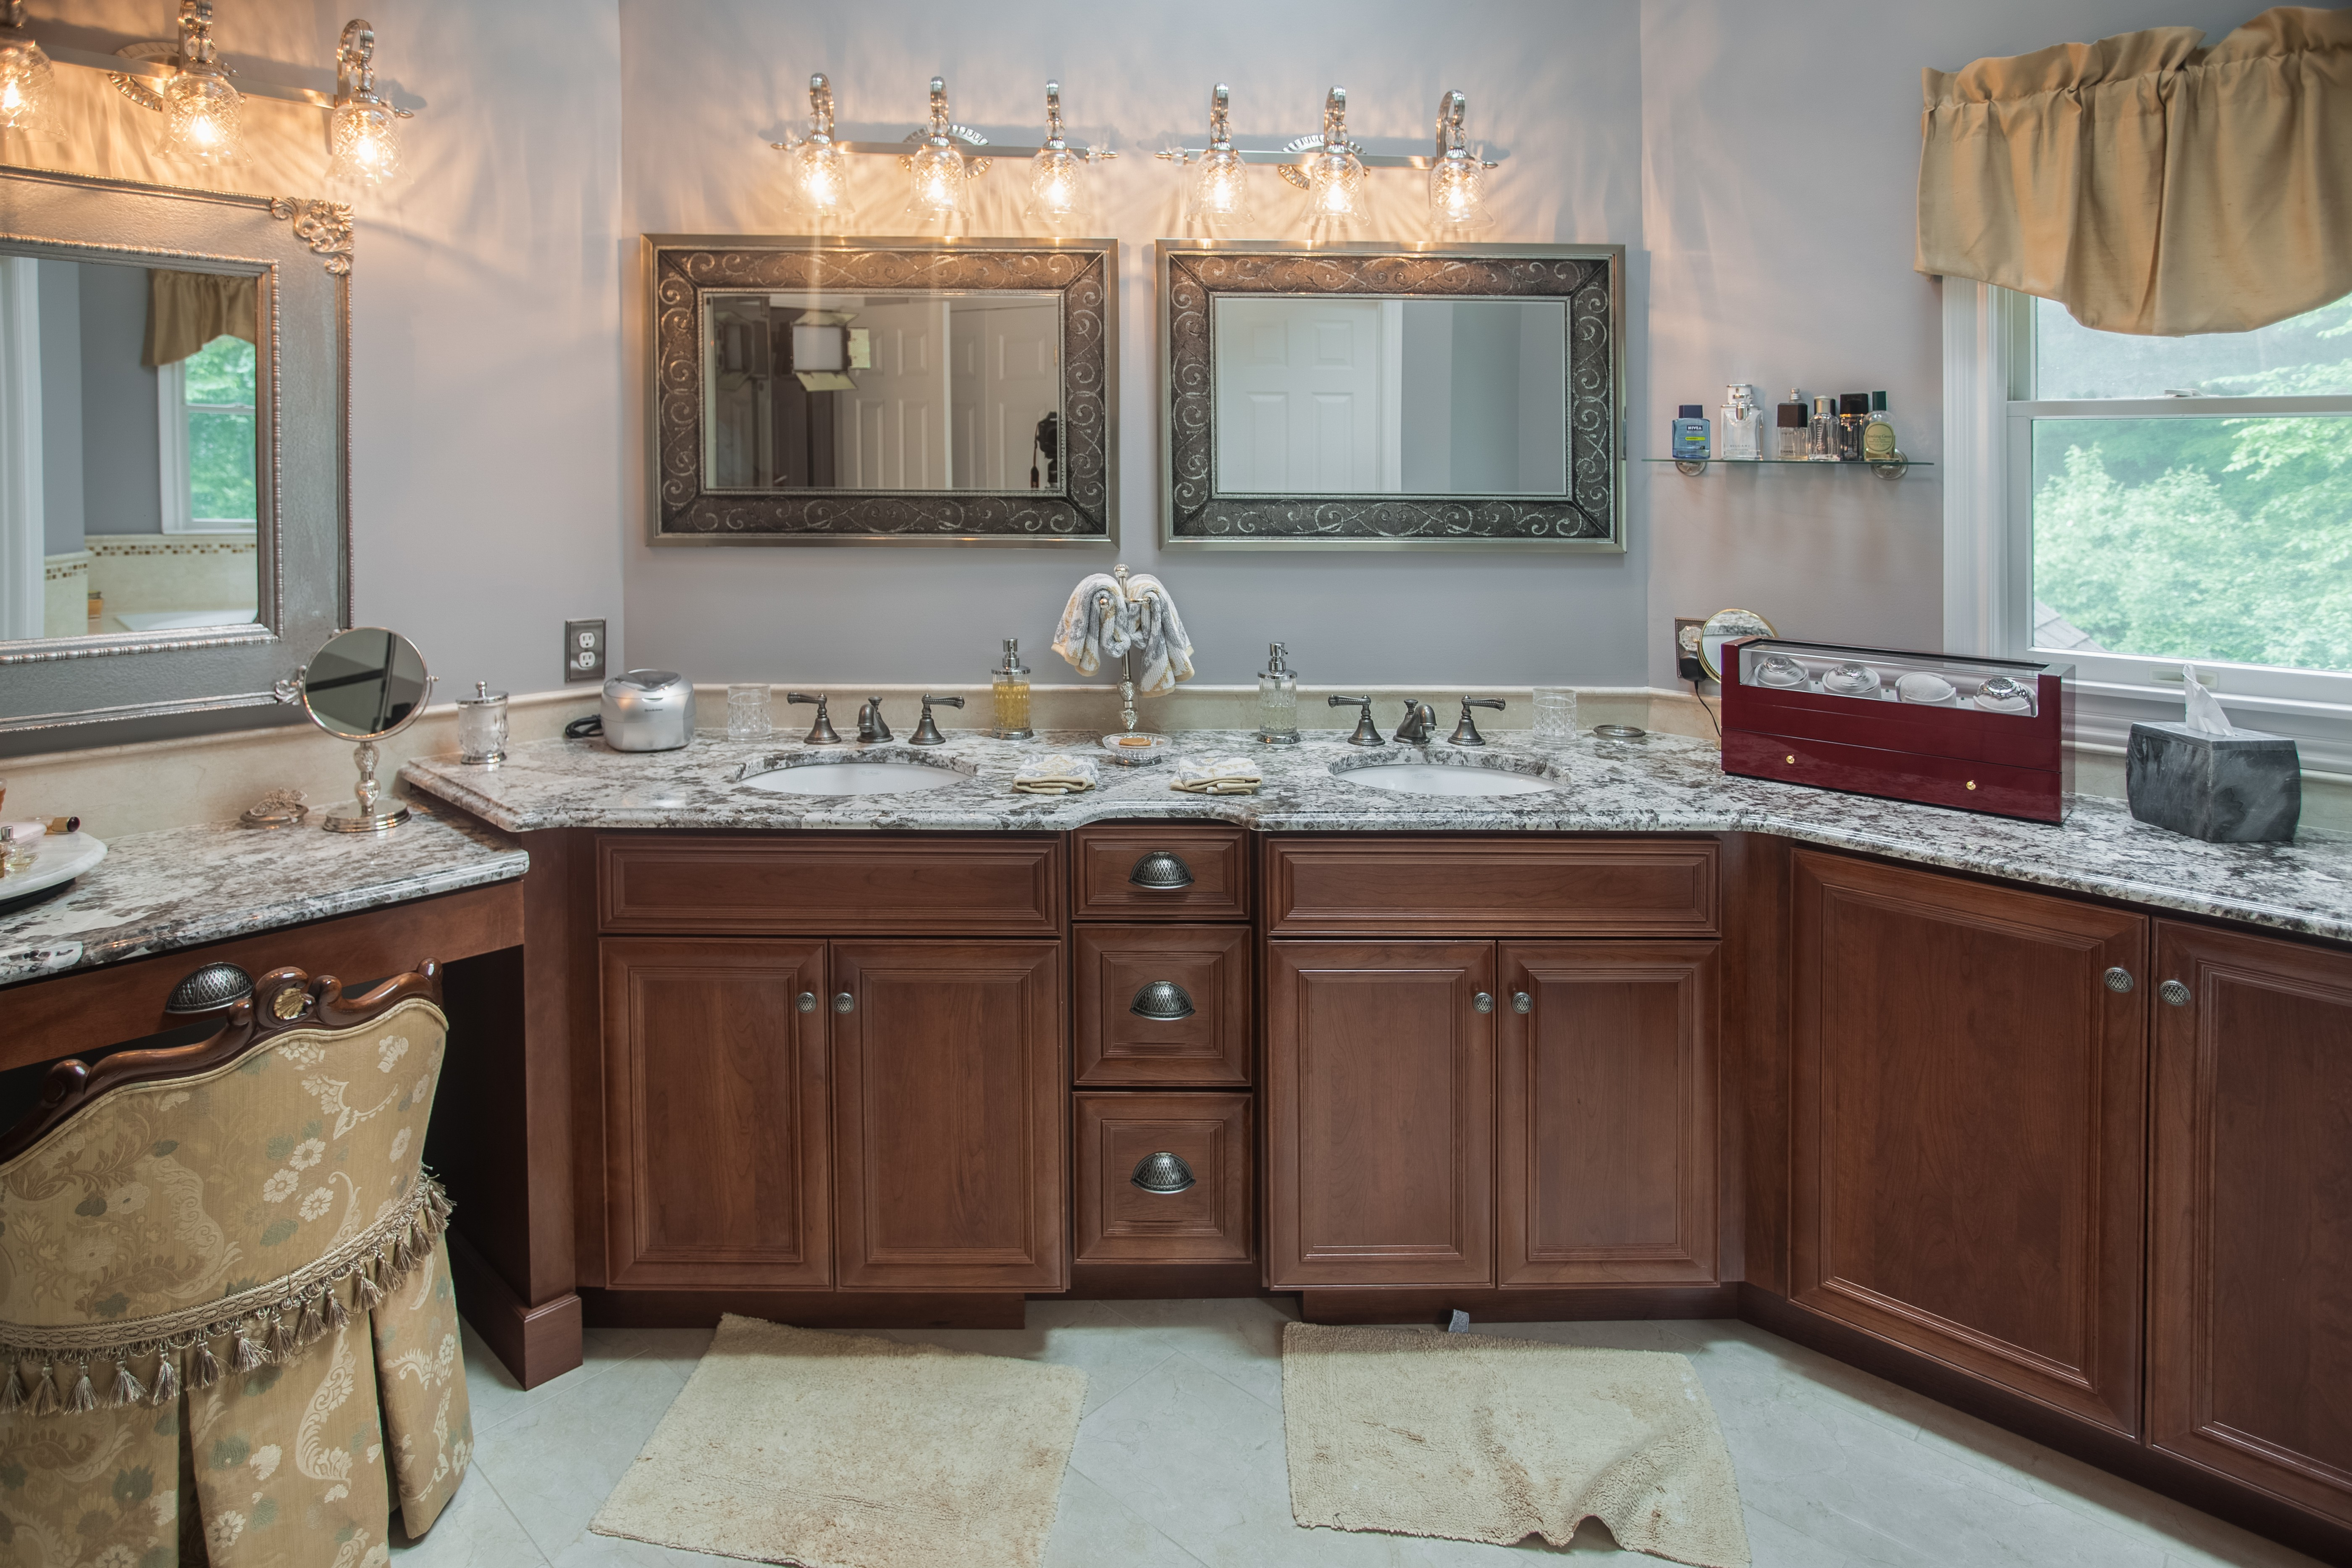 Bathroom Remodeling Guide bathroom remodeling guide: the do's and don'ts